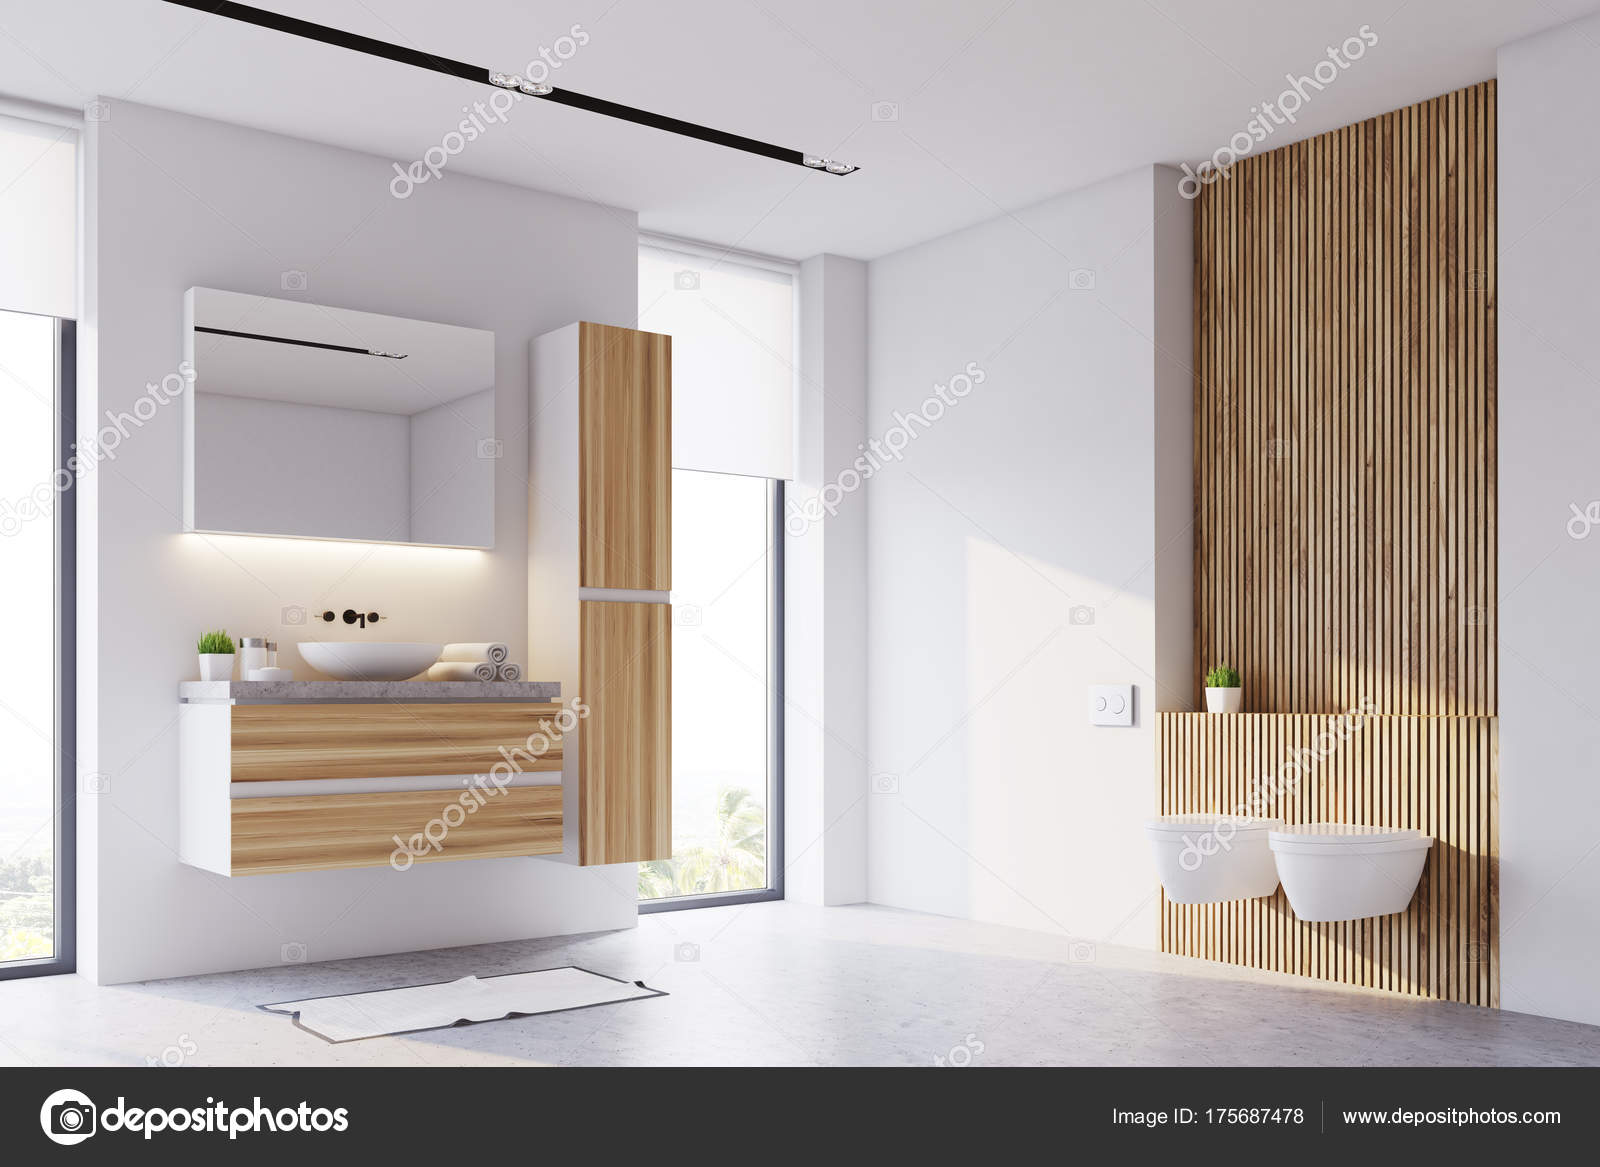 Stunning Innenseite Wei Und Holz Bad U Stockfoto With Holz Bad